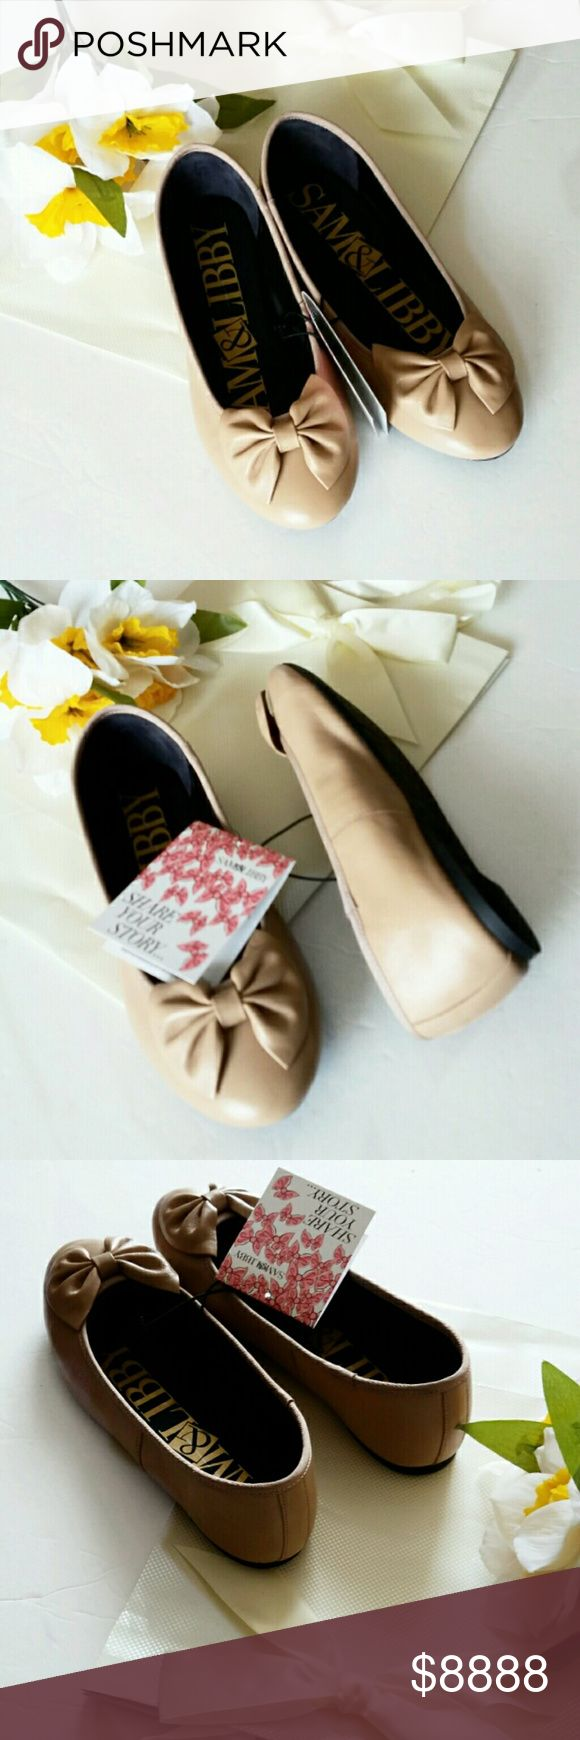 COMING SOON!! Sam & Libby Neutral Ballet Bow Flats LISTING IN PROGRESS-Please 'LIKE' this listing to be automatically notified when available for sale! Sam & Libby Shoes